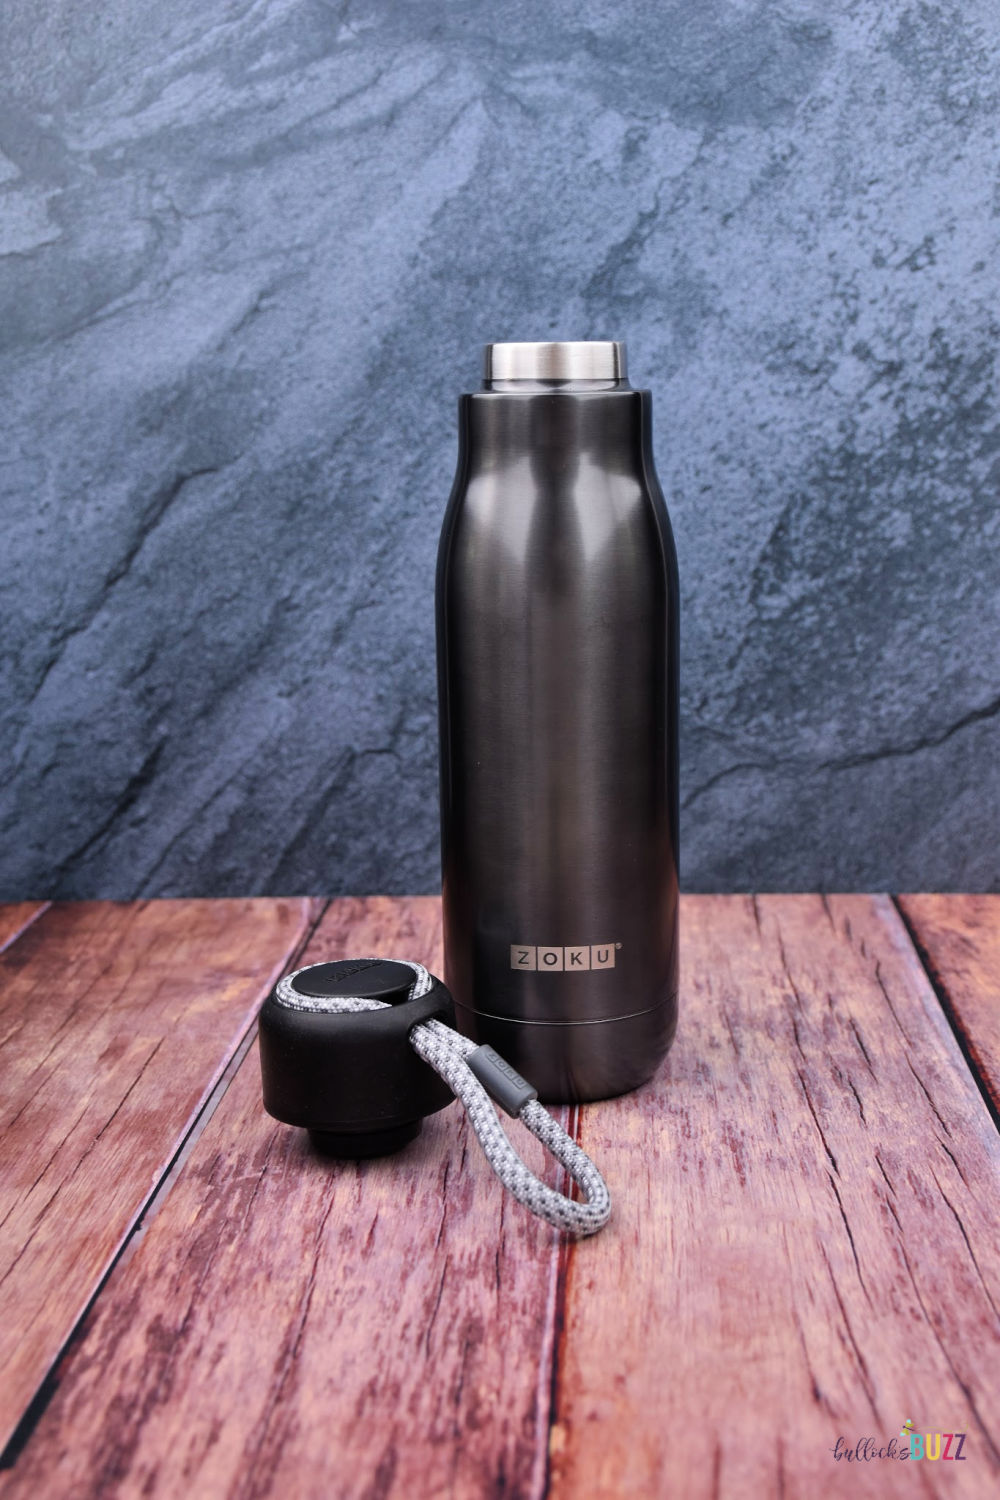 The best water bottles should be convenient, functional, and safe from harmful chemicals., just like this Zoku Stainless Steel Water Bottle.